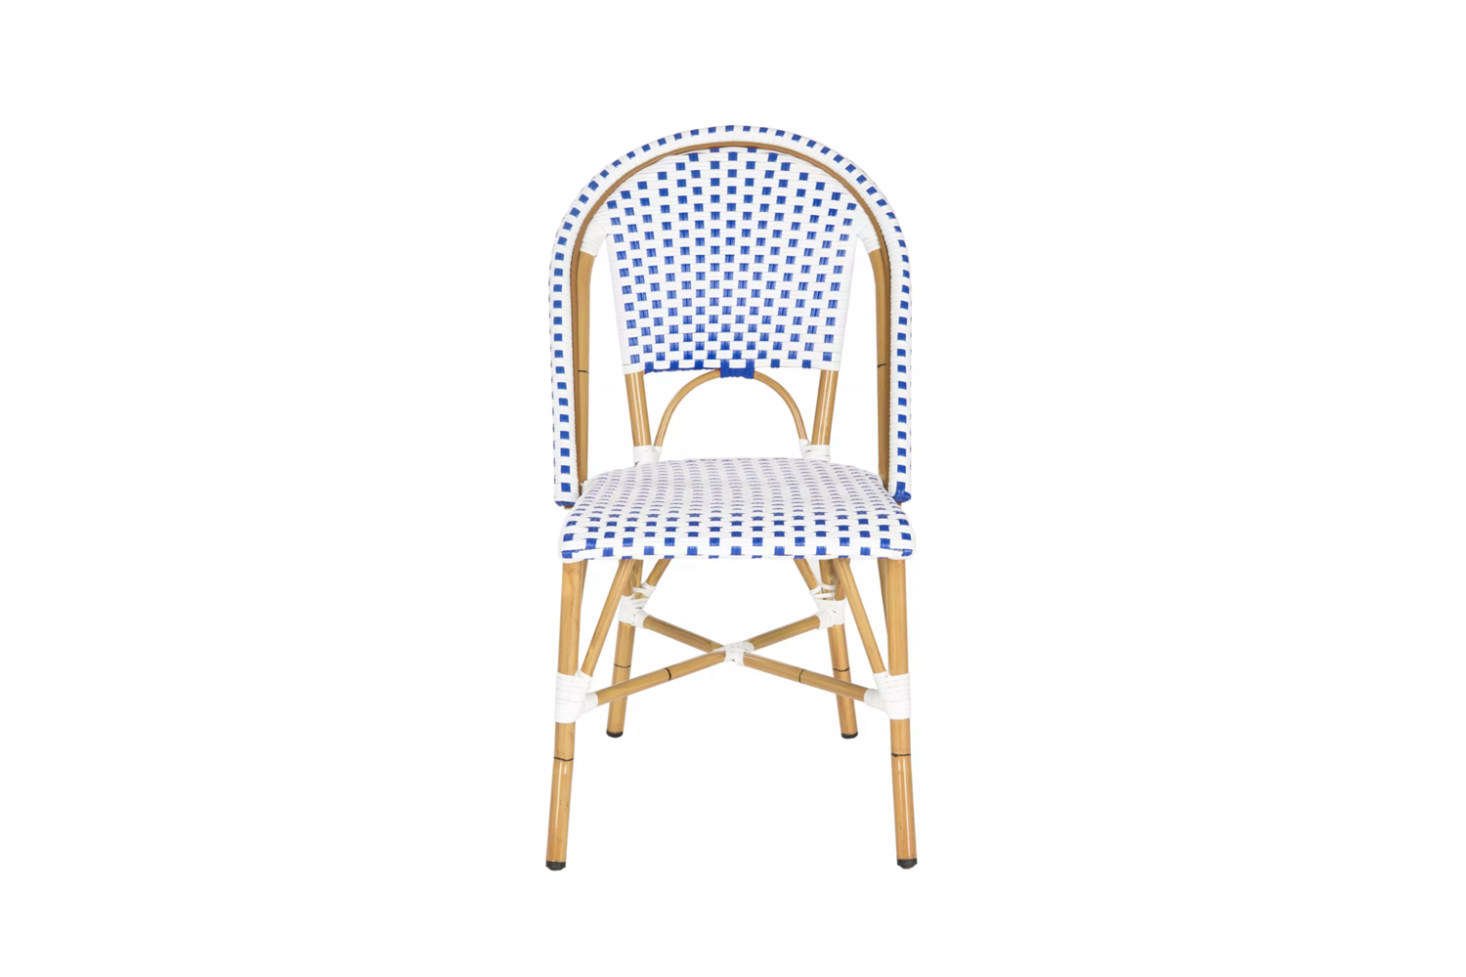 A variation on a common theme, the Salcha Indoor-Outdoor French Bistro Stacking Side Chair comes in five colors at Target; $349.99 for a pair. It's made by Safavieh, which also supplies the same or similar designs to Home Depot, Wayfair, Overstock, and others.